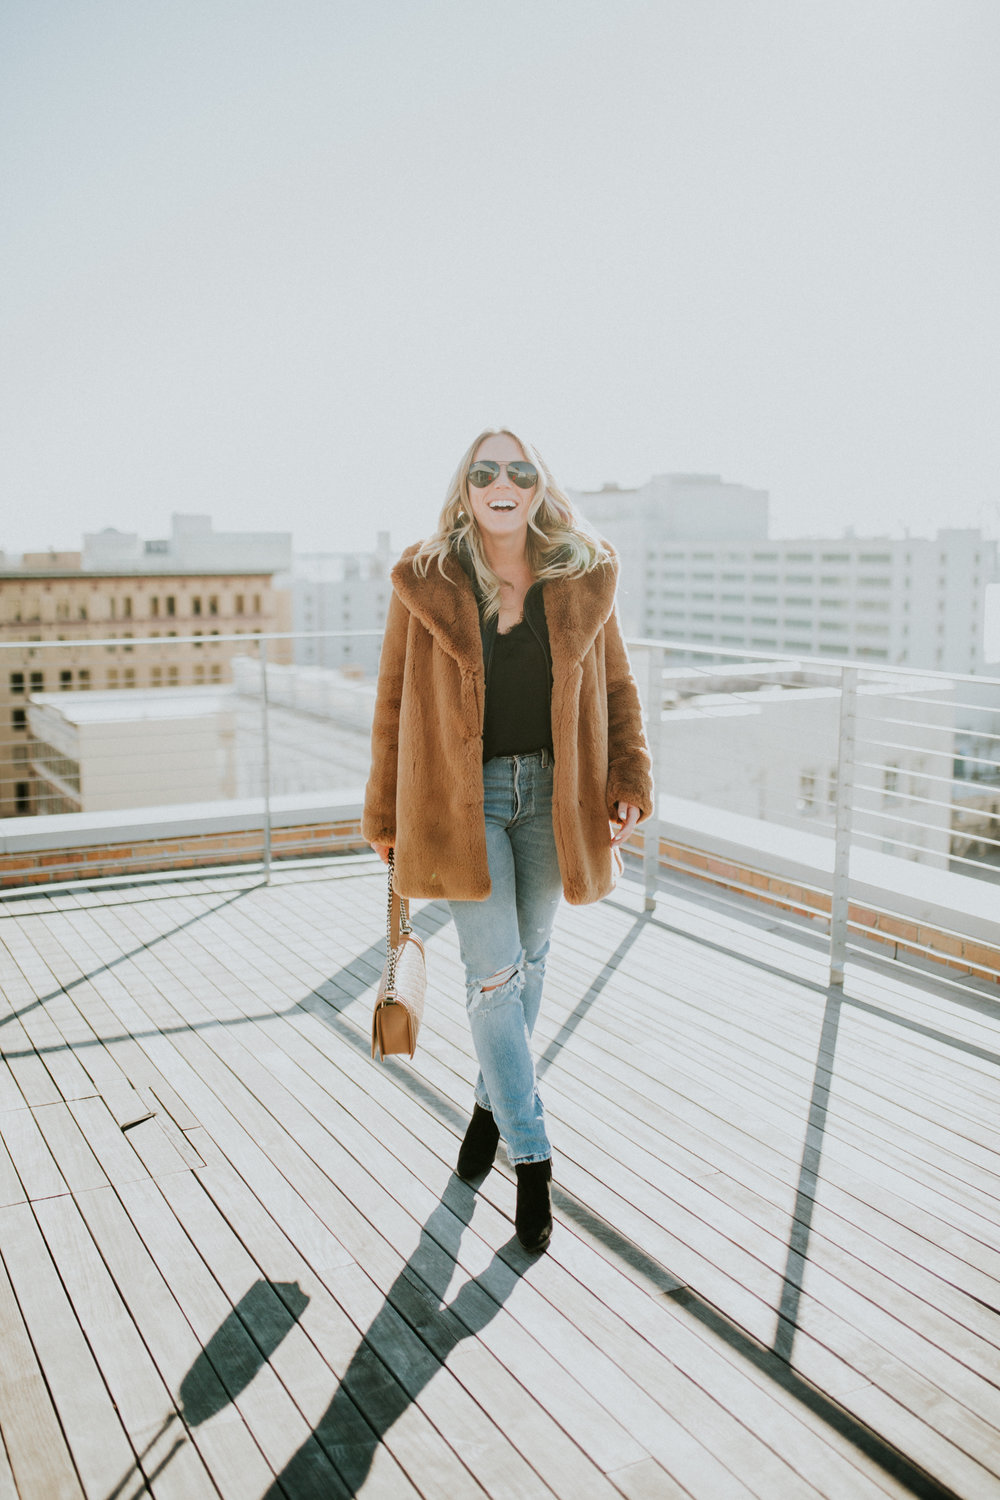 Blogger Gracefully Taylored in Zara Coat and Levis(13).jpg